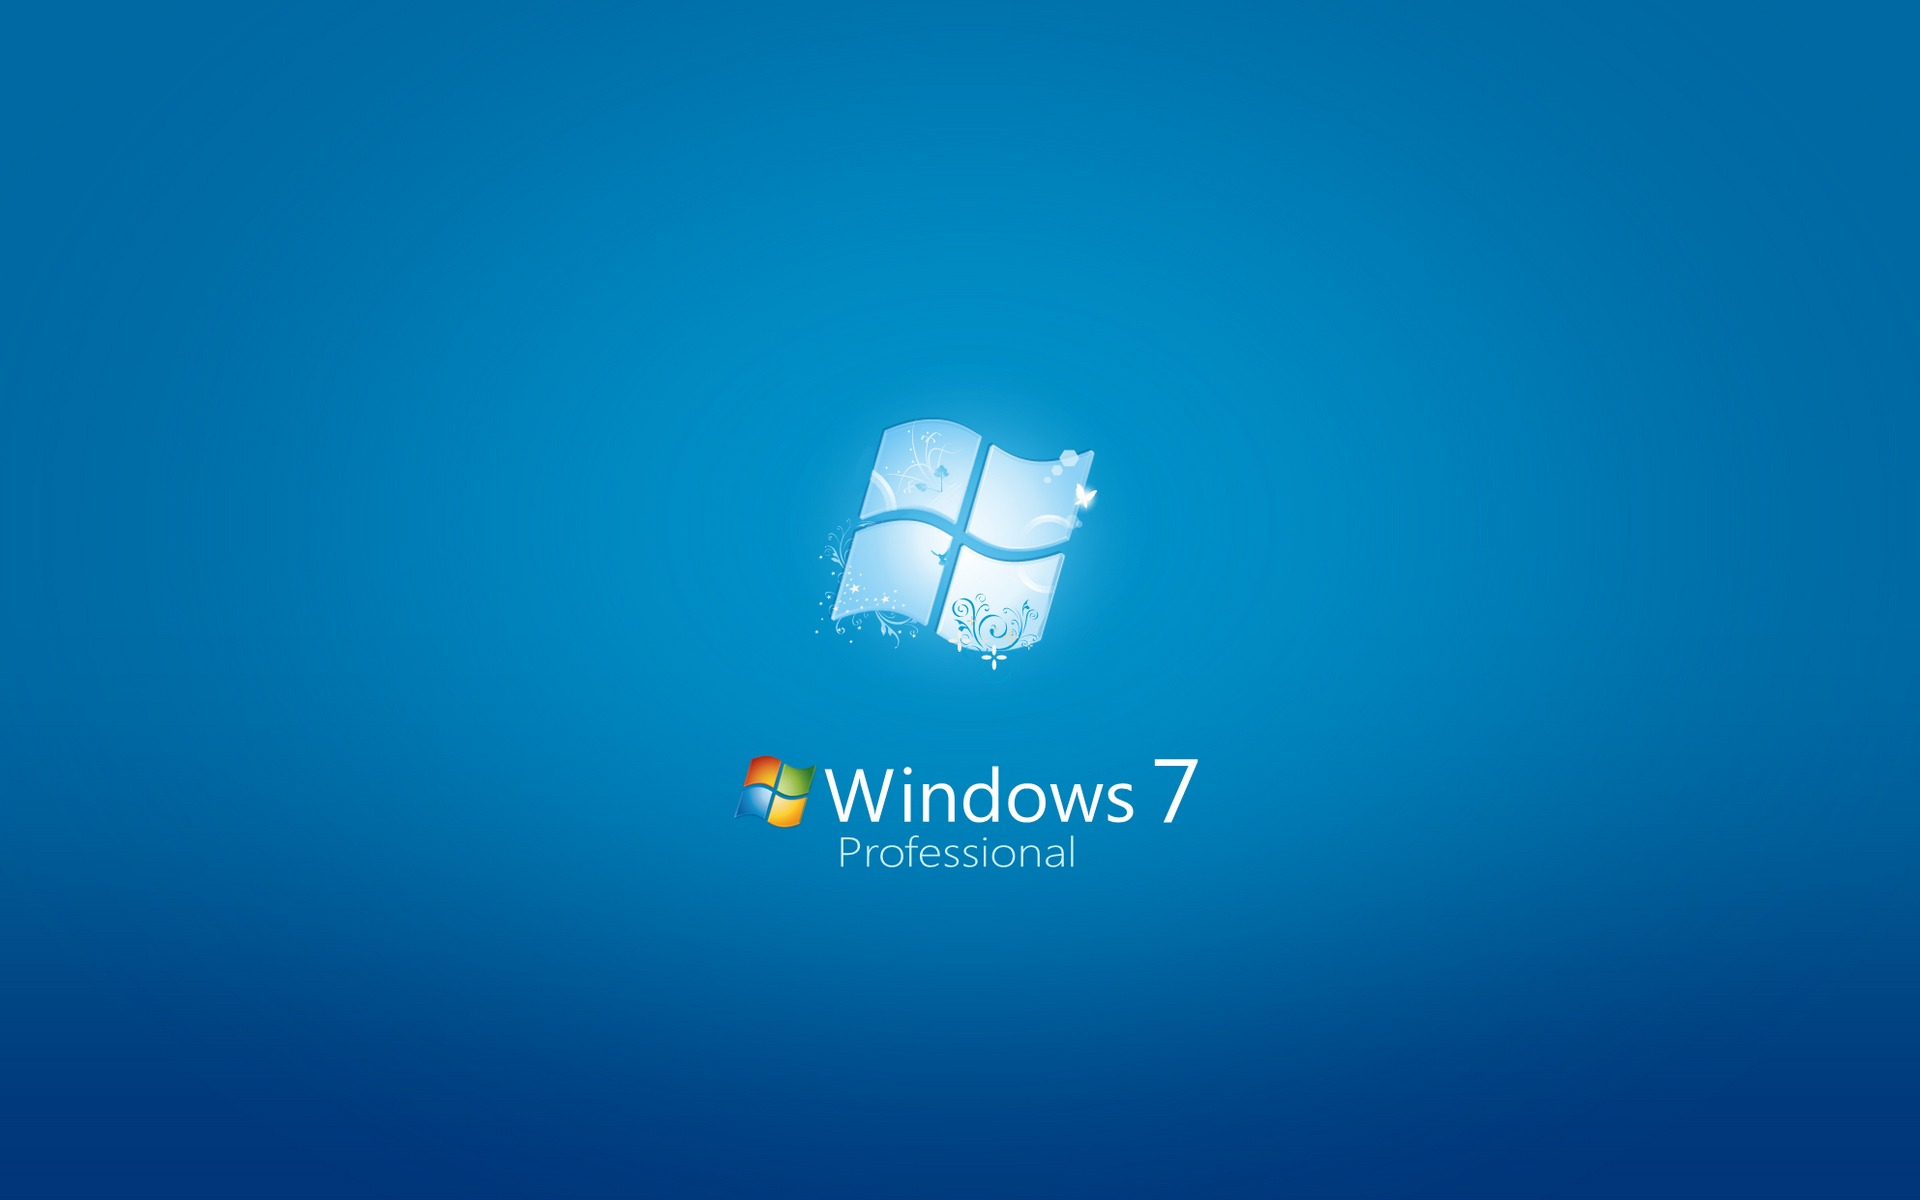 Windows 7 Pro Wallpaper